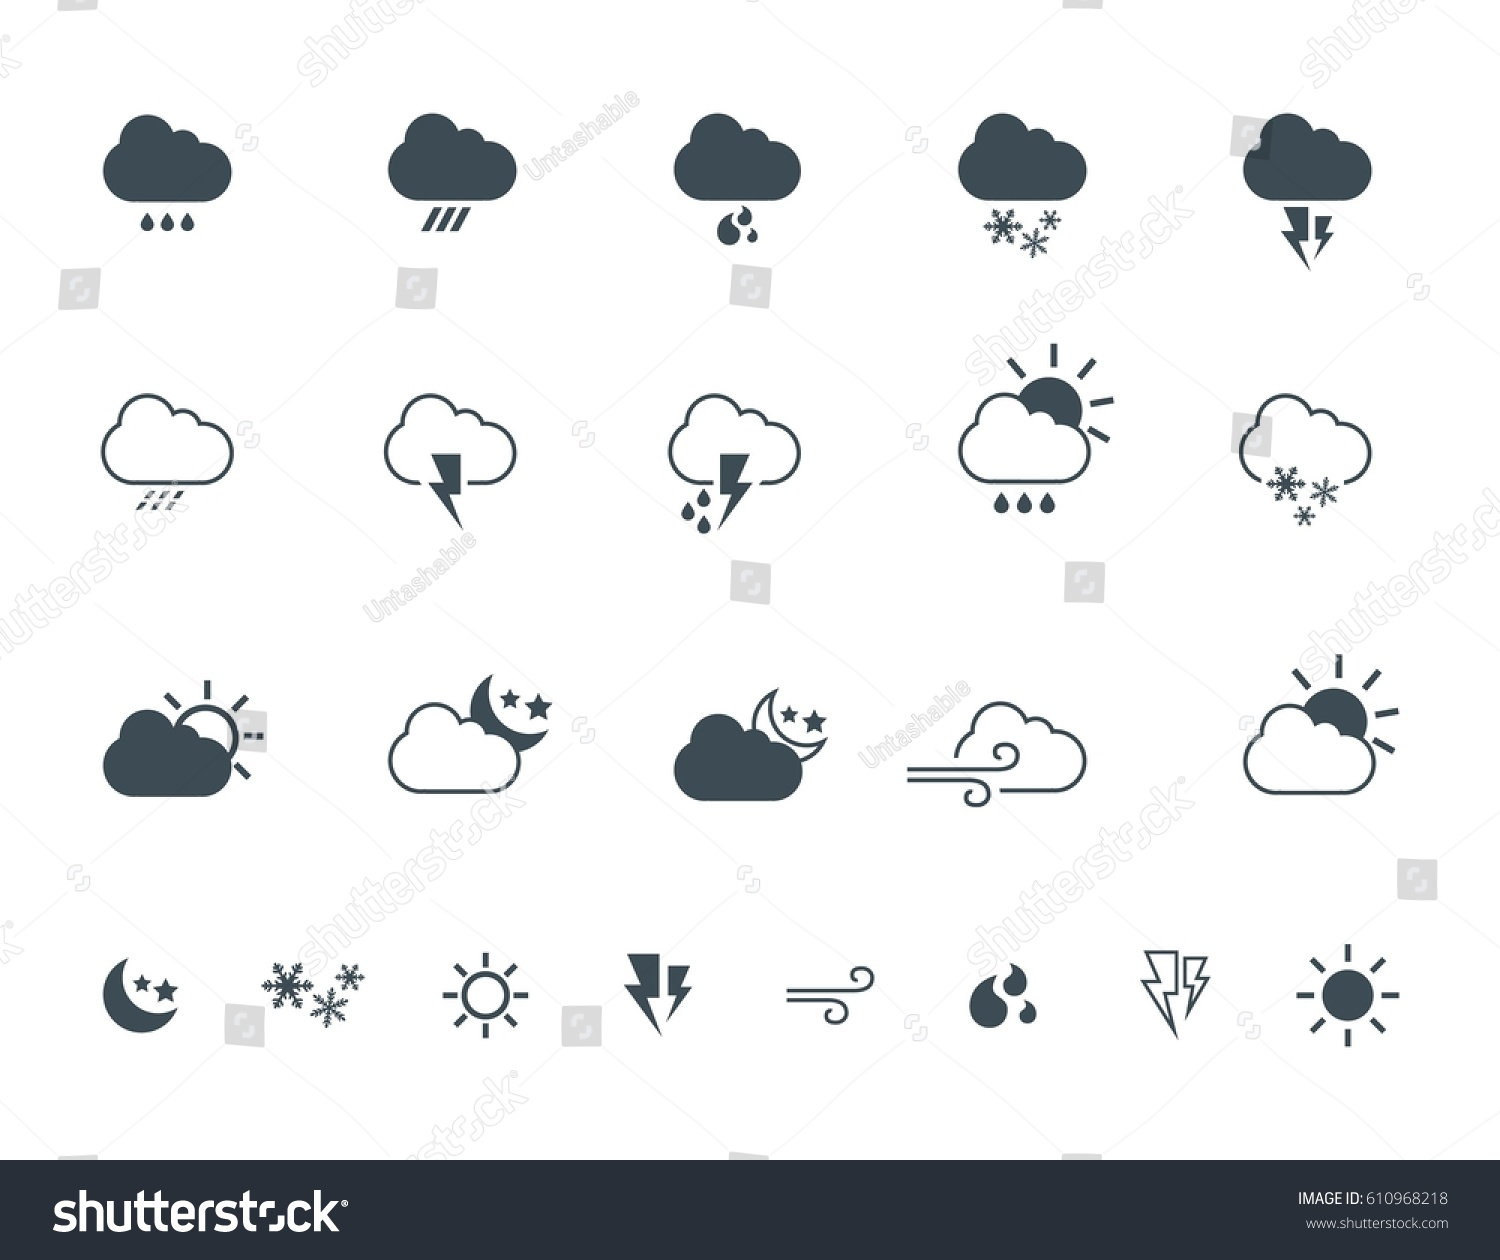 Simple weather vector icons logos design stock vector 610968218 simple weather vector icons logos design elements seasons signs and symbols of clouds biocorpaavc Images